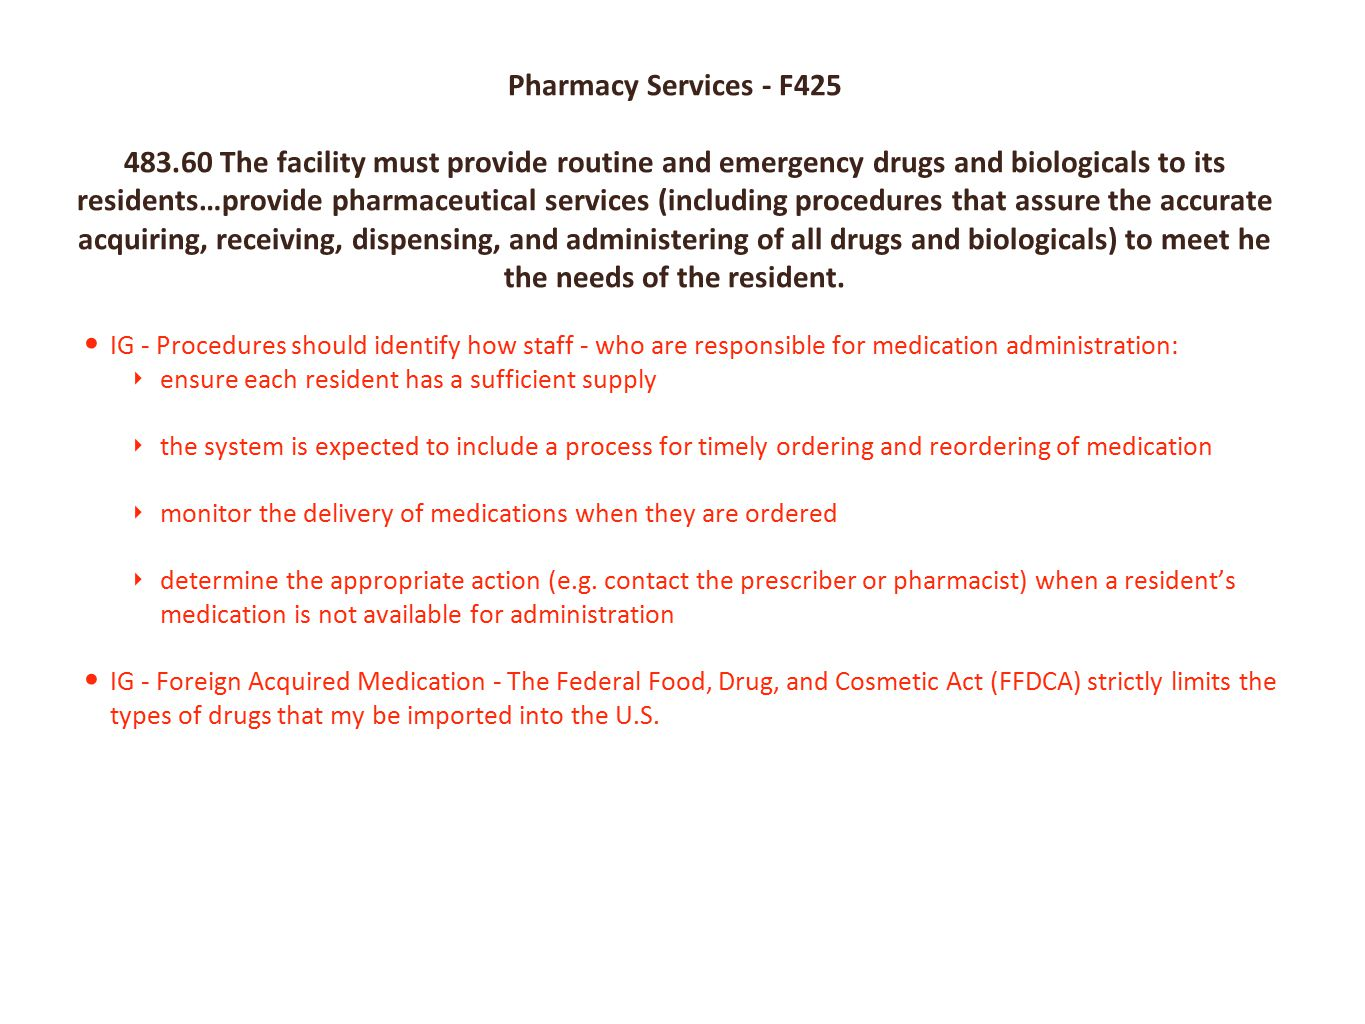 To ensure their resident has a sufficient supply of medication NEXT